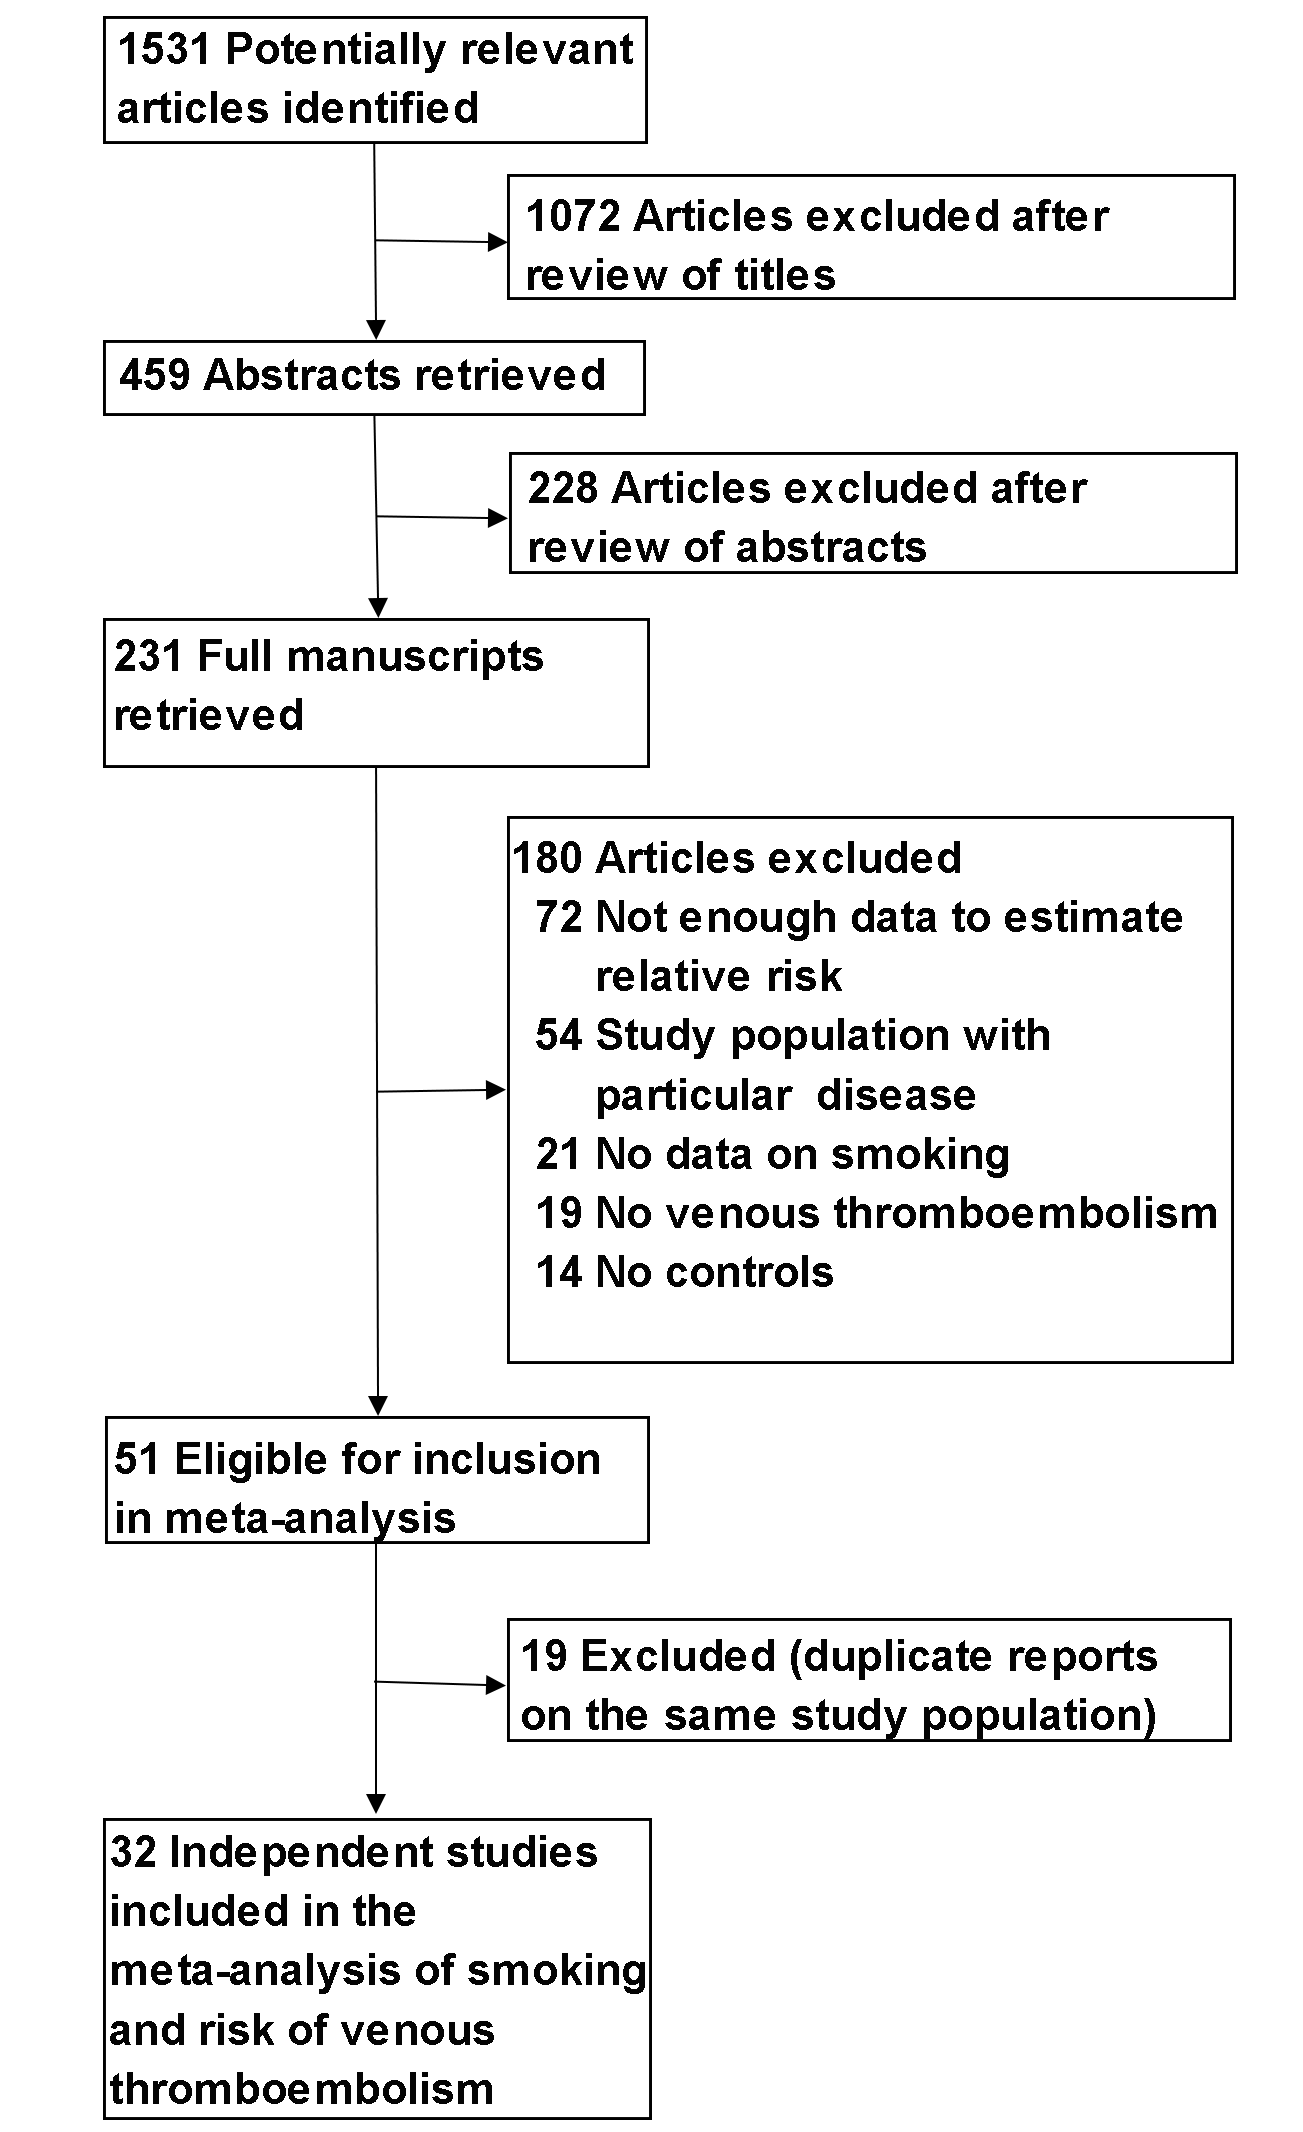 Flowchart of the selection of studies included in meta-analysis.